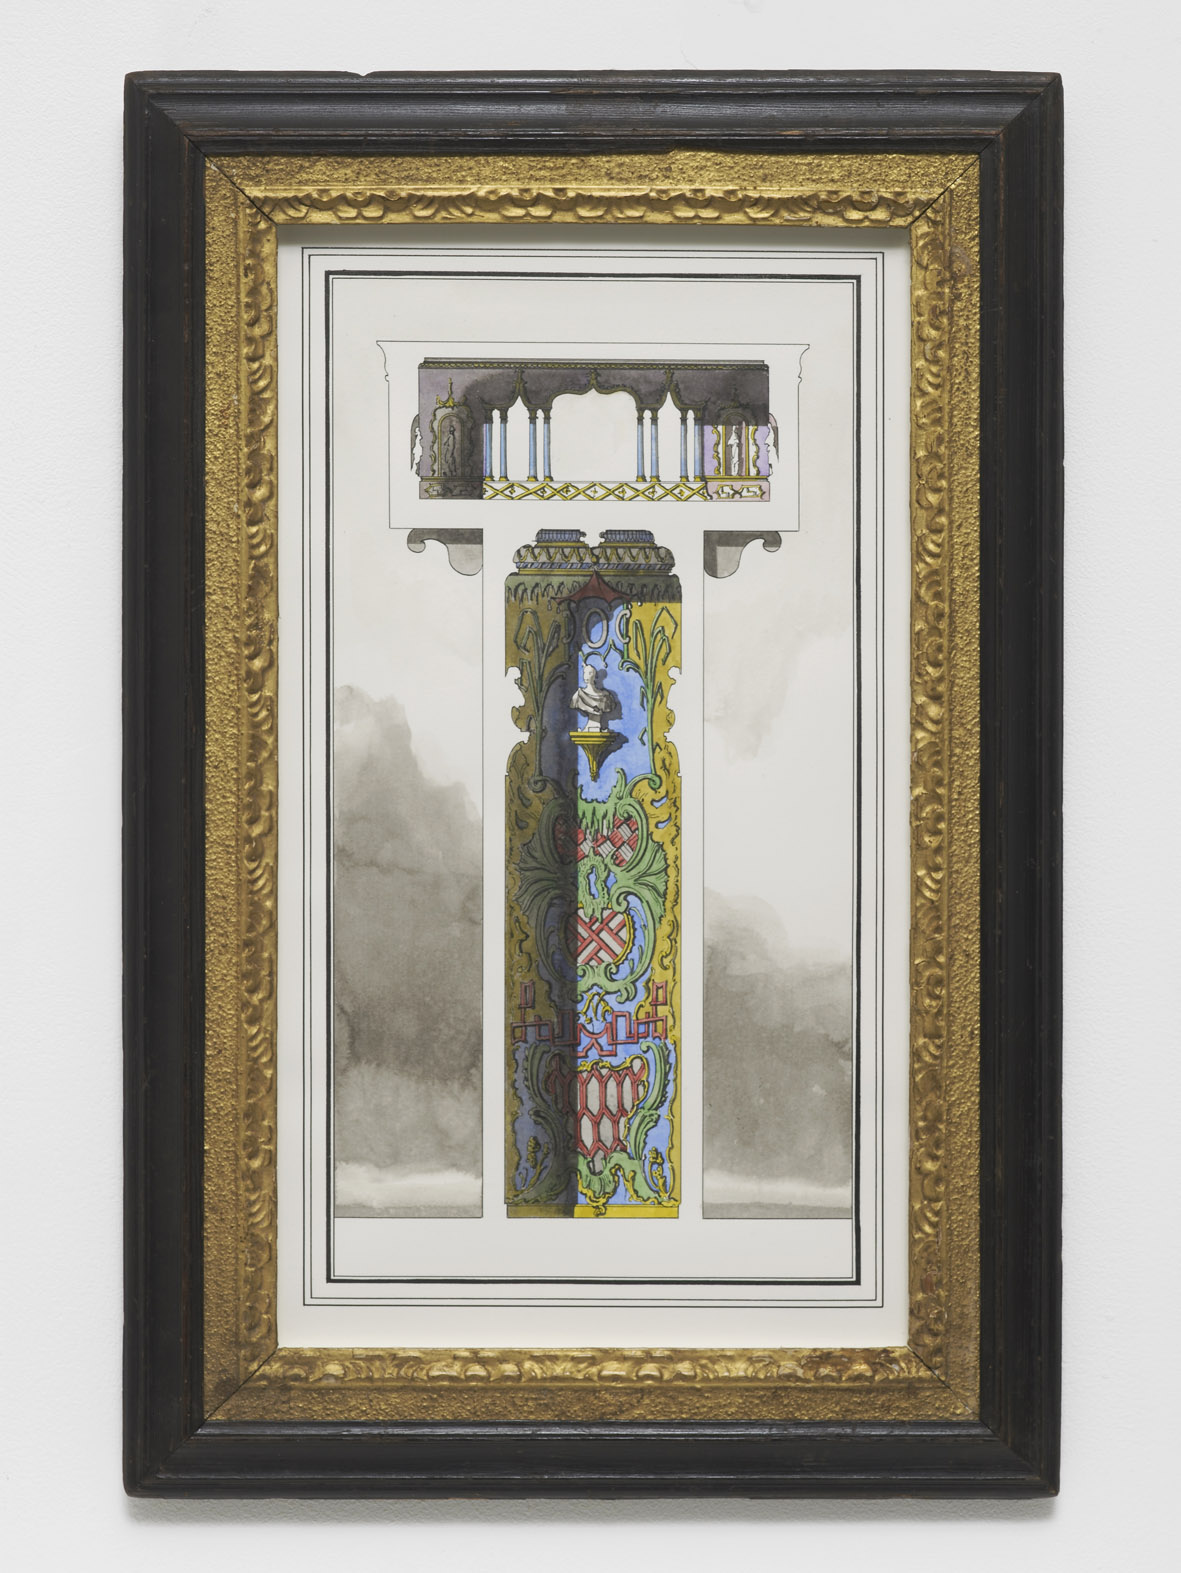 Two-storey, two room pavilion in the Oriental Taste 2016 Ink and watercolour on paper 49.2 x 32 cm / 19.3 x 12.5 in (framed)